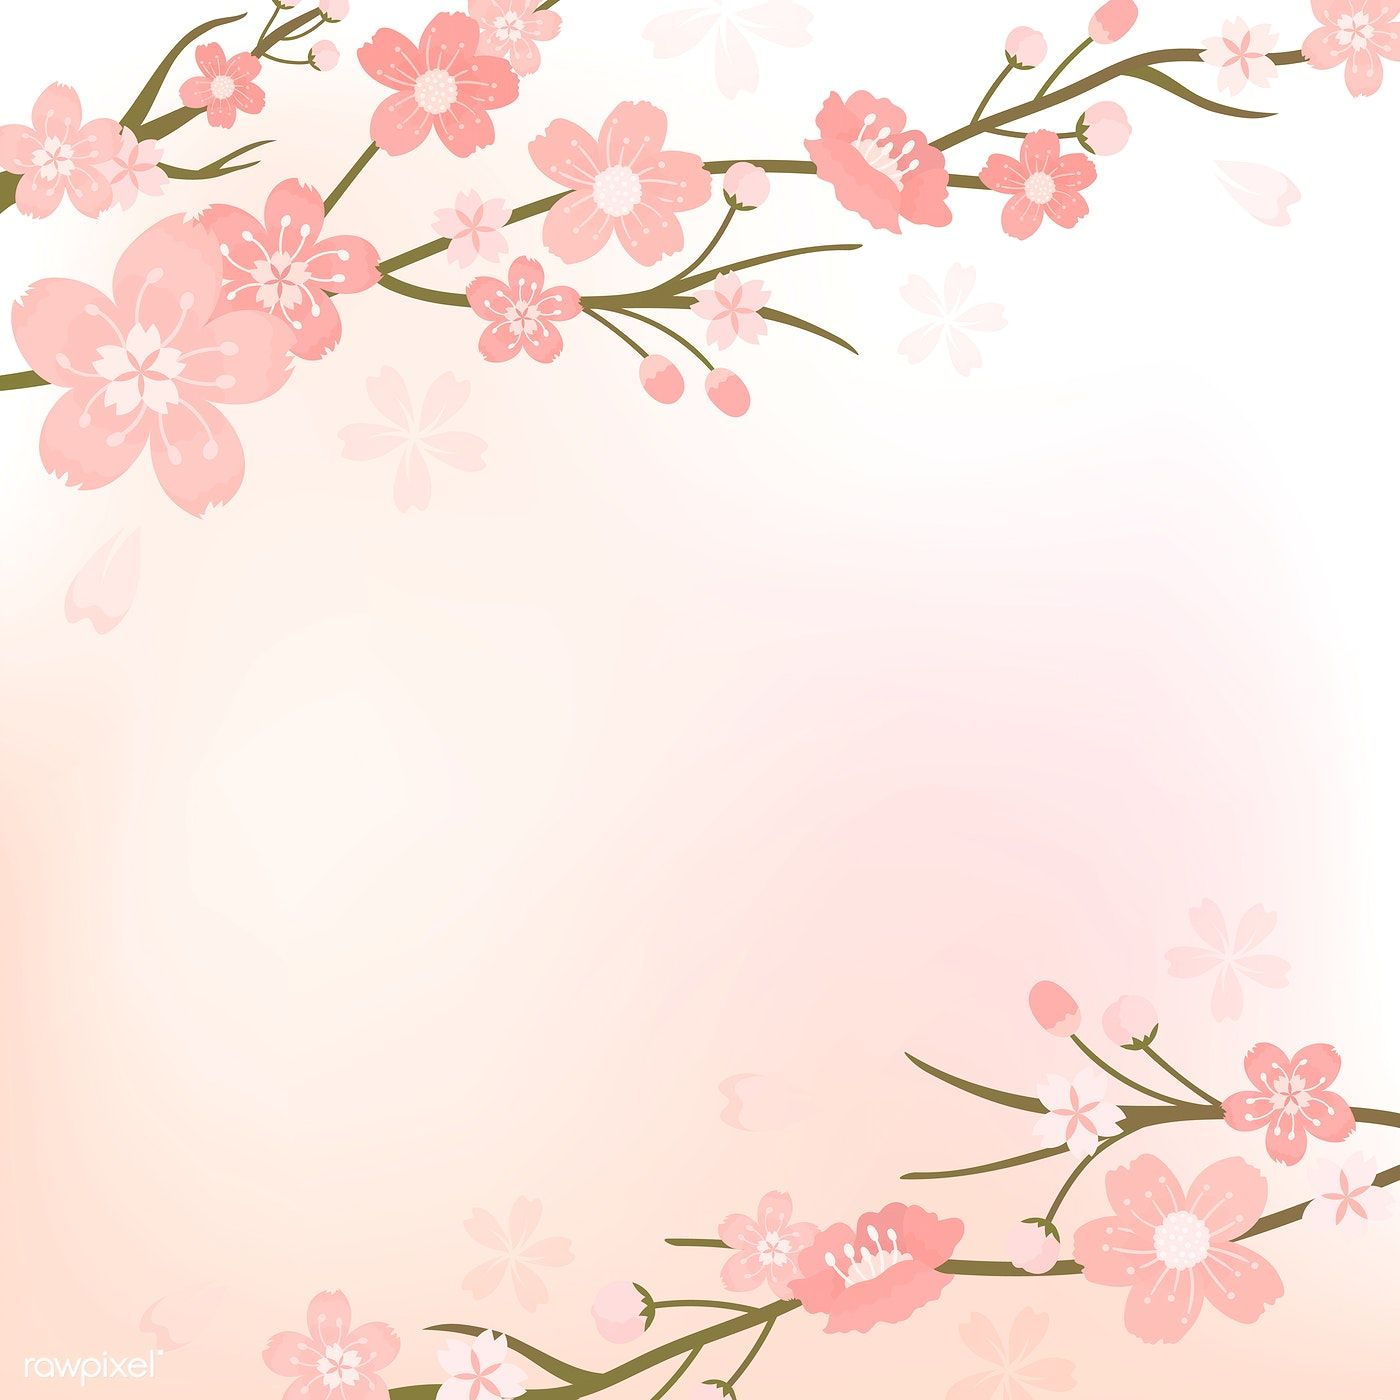 Pink Cherry Blossom Blank Background Vectot Free Image By Rawpixel Com Manotang Cherry Blossom Background Cherry Blossom Art Vector Free